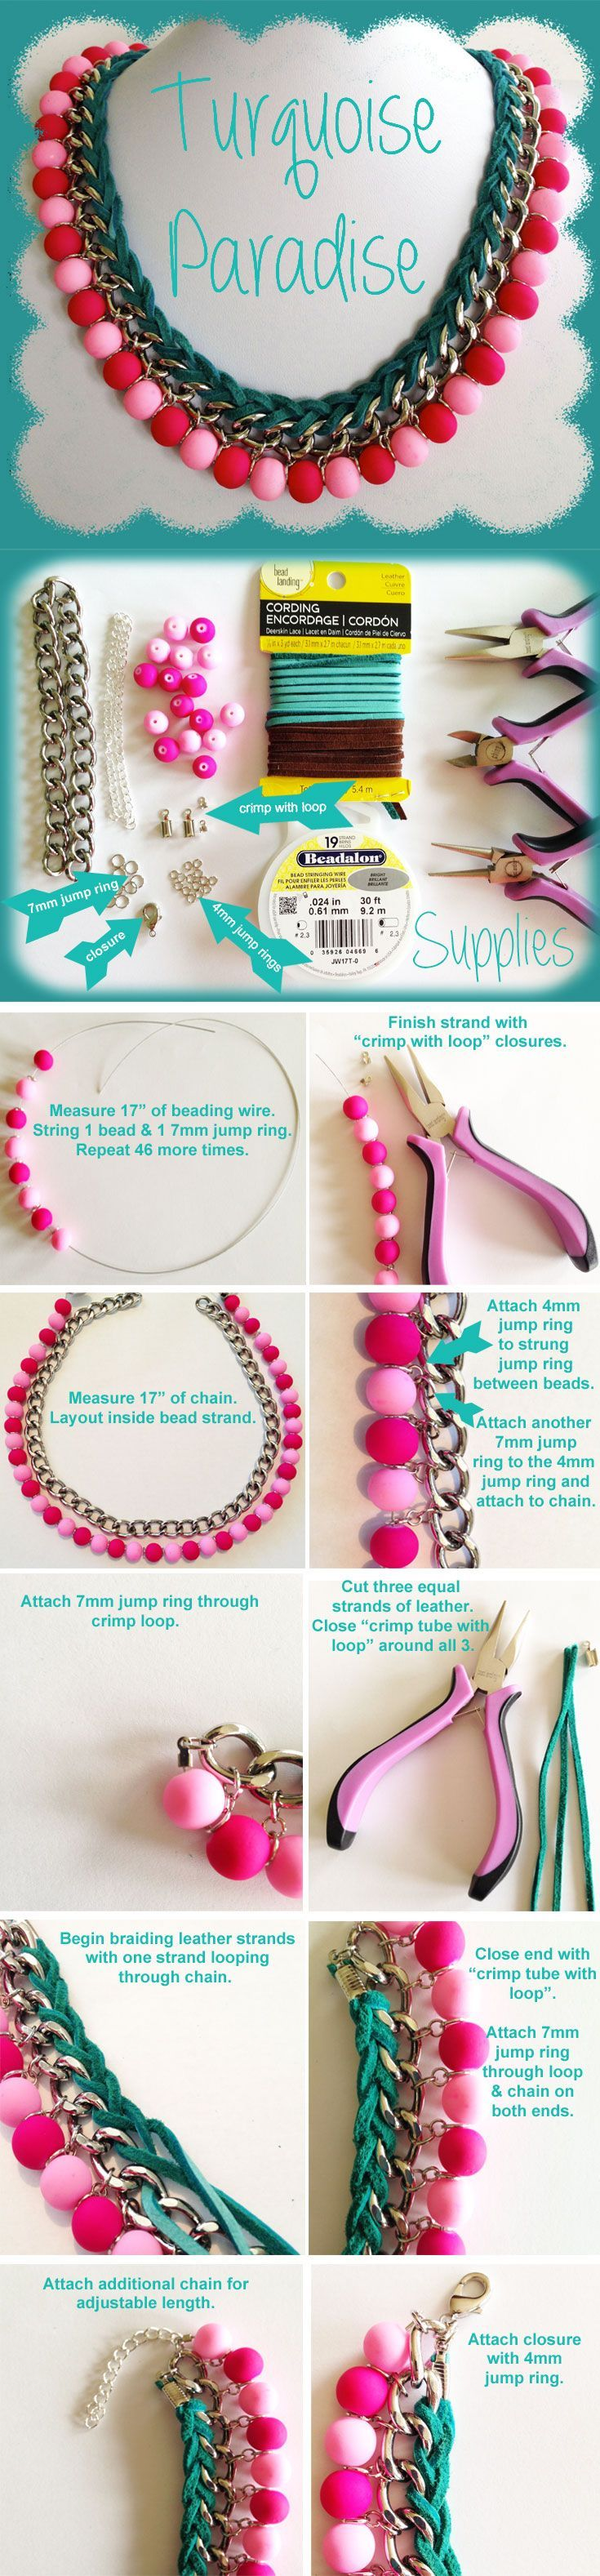 Beauty in simplicity: DIY inspiration: statement necklace